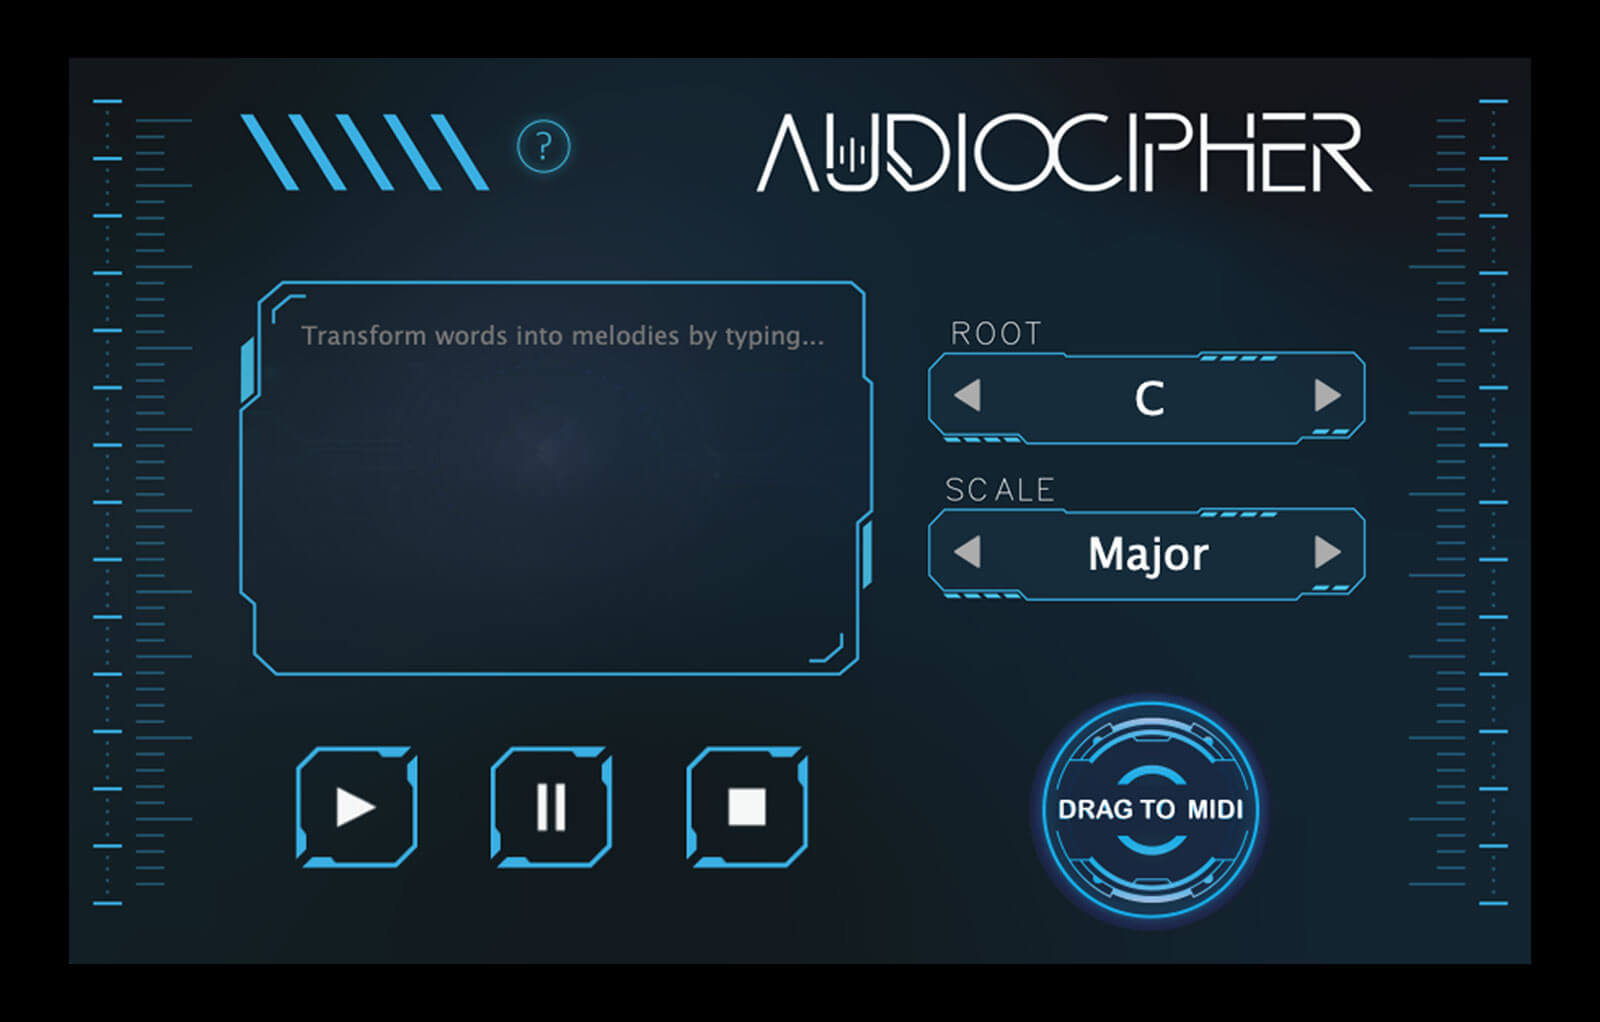 AudioCipher